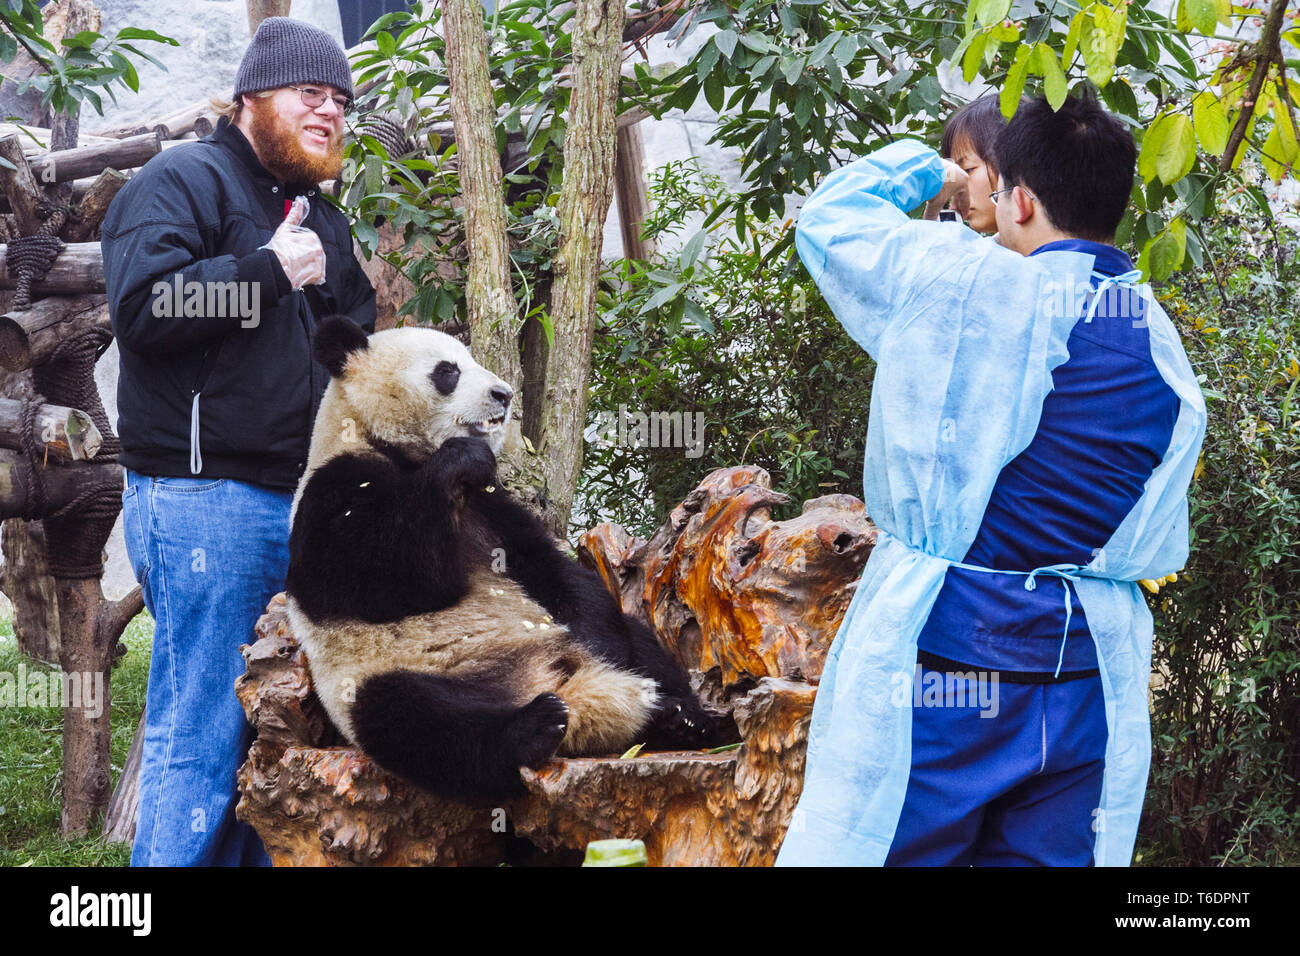 Chengdu, Sichuan province, China : A tourist has picture taken by a Giant Panda bear at the Chengdu Research Base of Giant Panda Breeding. - Stock Image